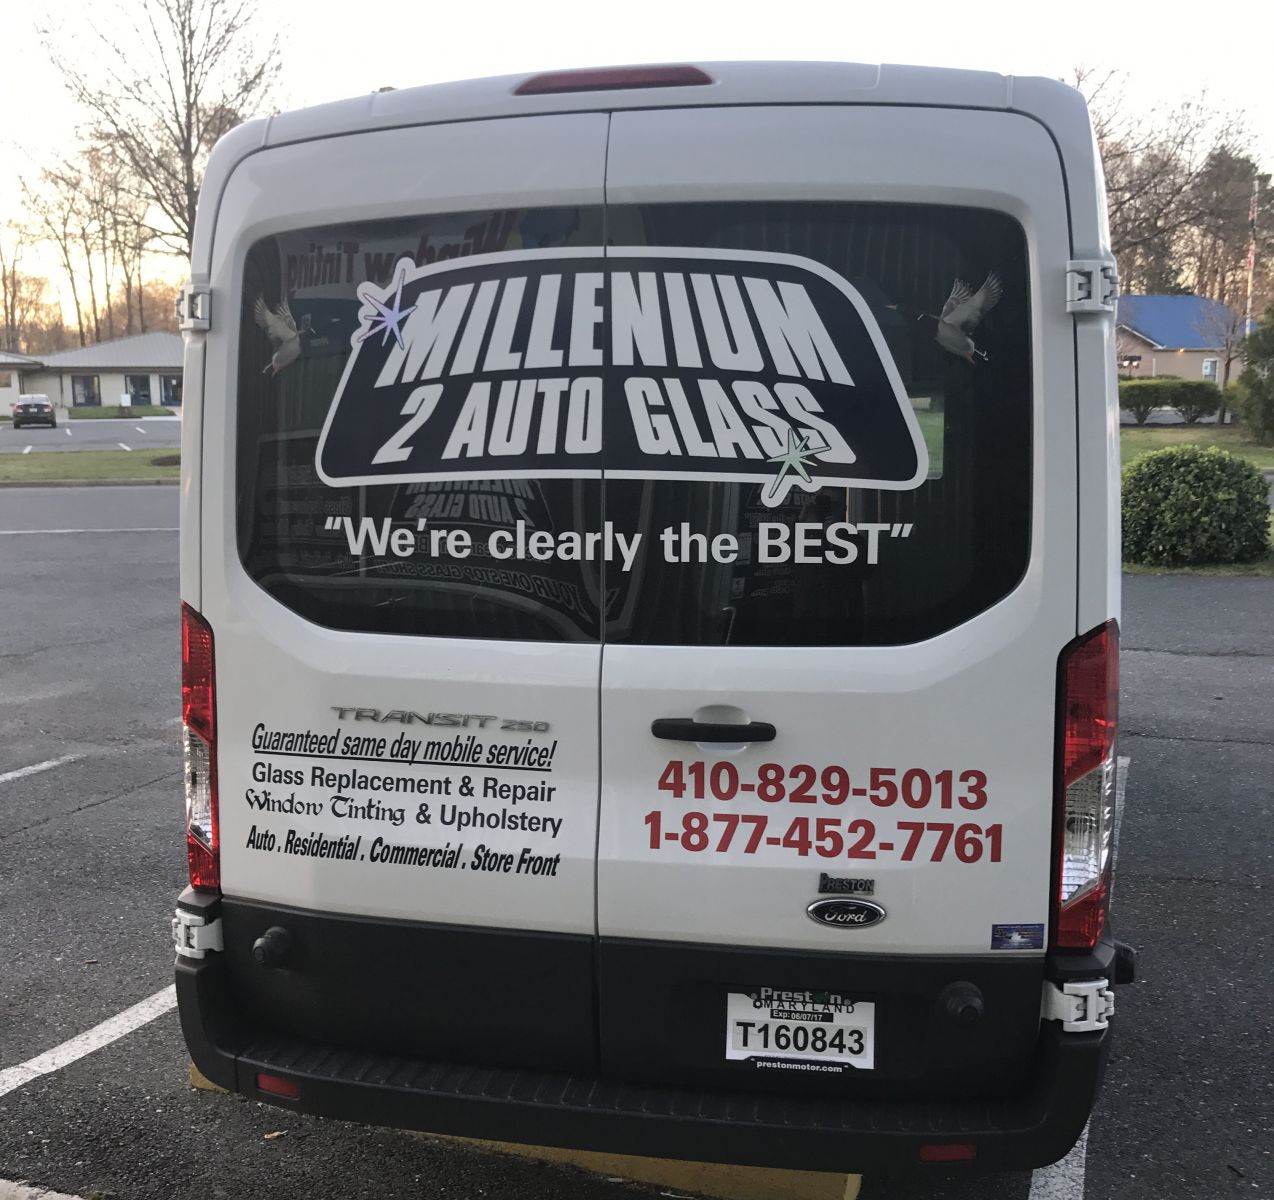 Auto Glass Quote New Millenium 2 Auto Glass Quote Request